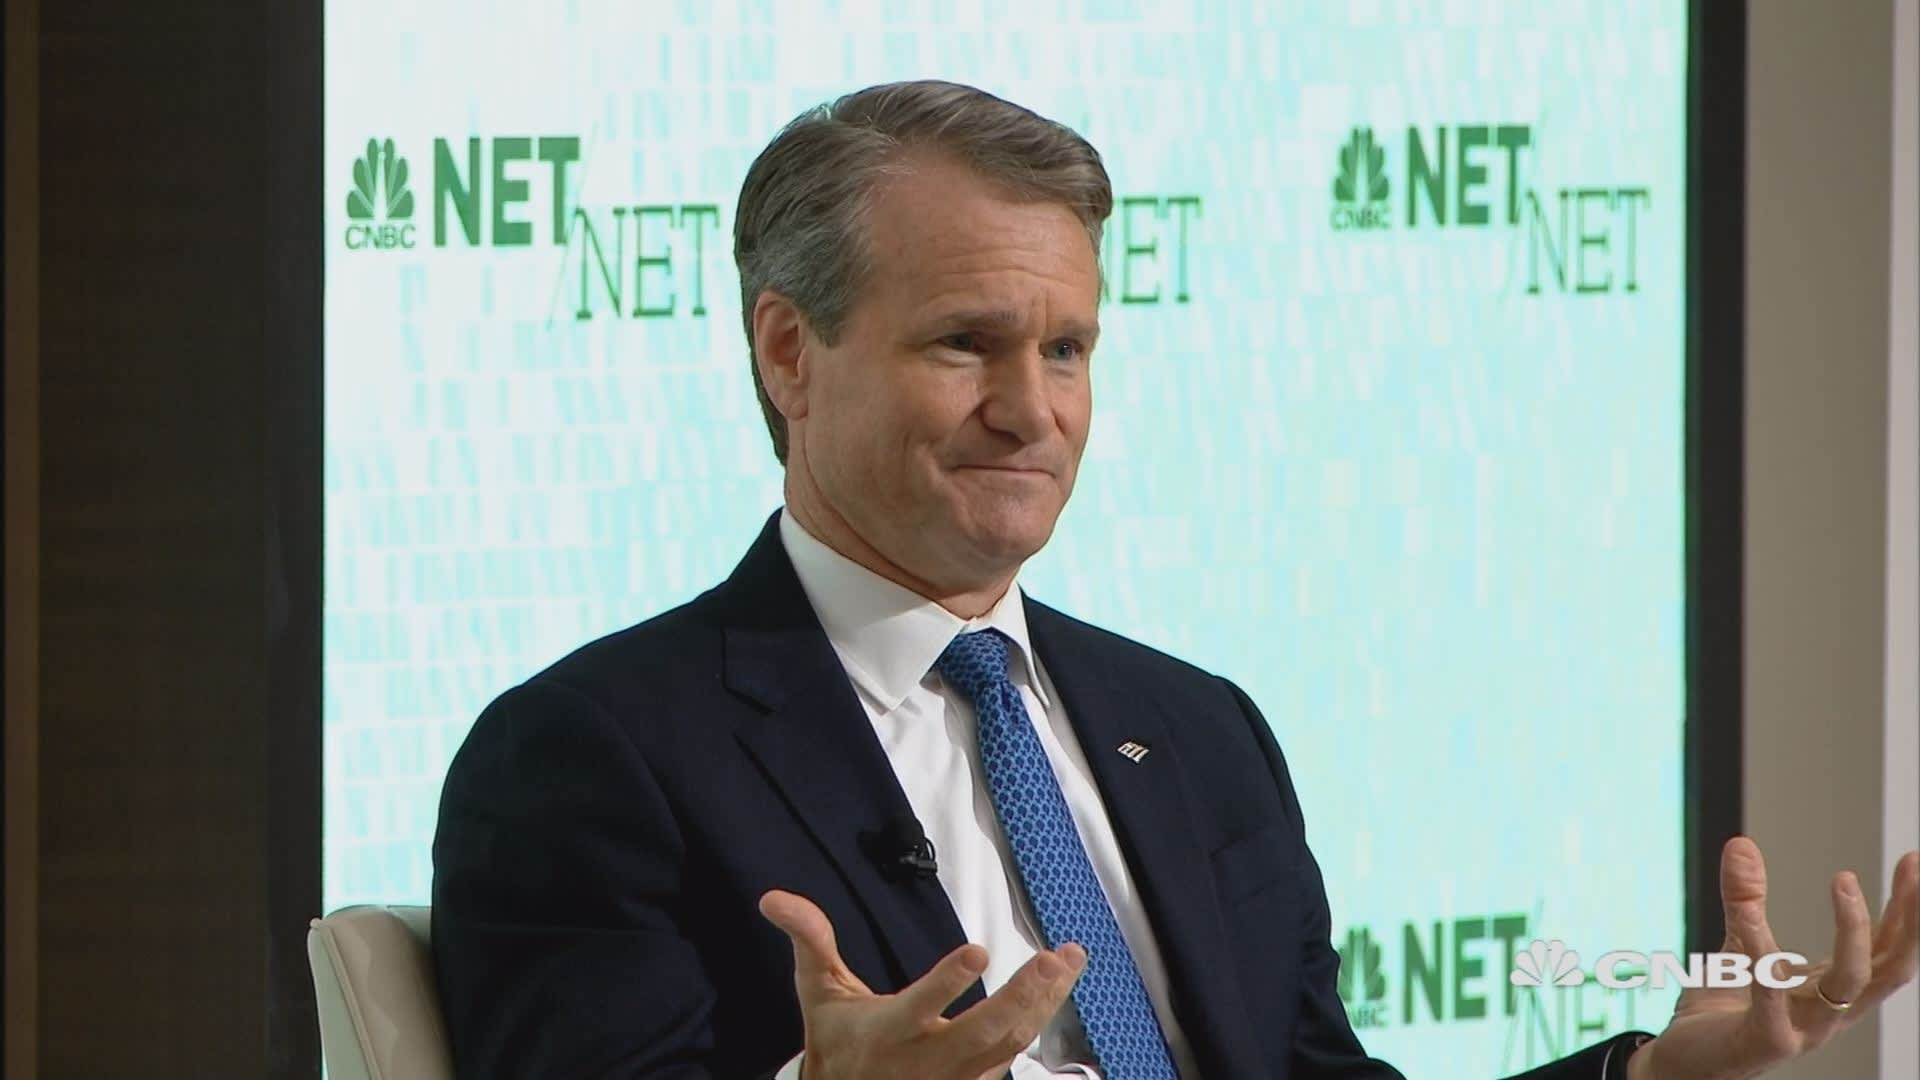 Bank of America's Moynihan on the impact of technology